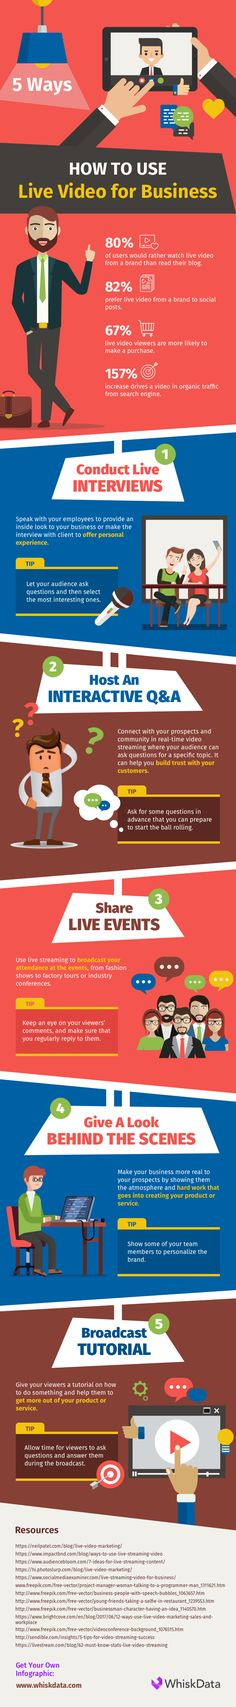 5 Ways How To Use Live Video For Business #Infographic #live #video #marketing #business